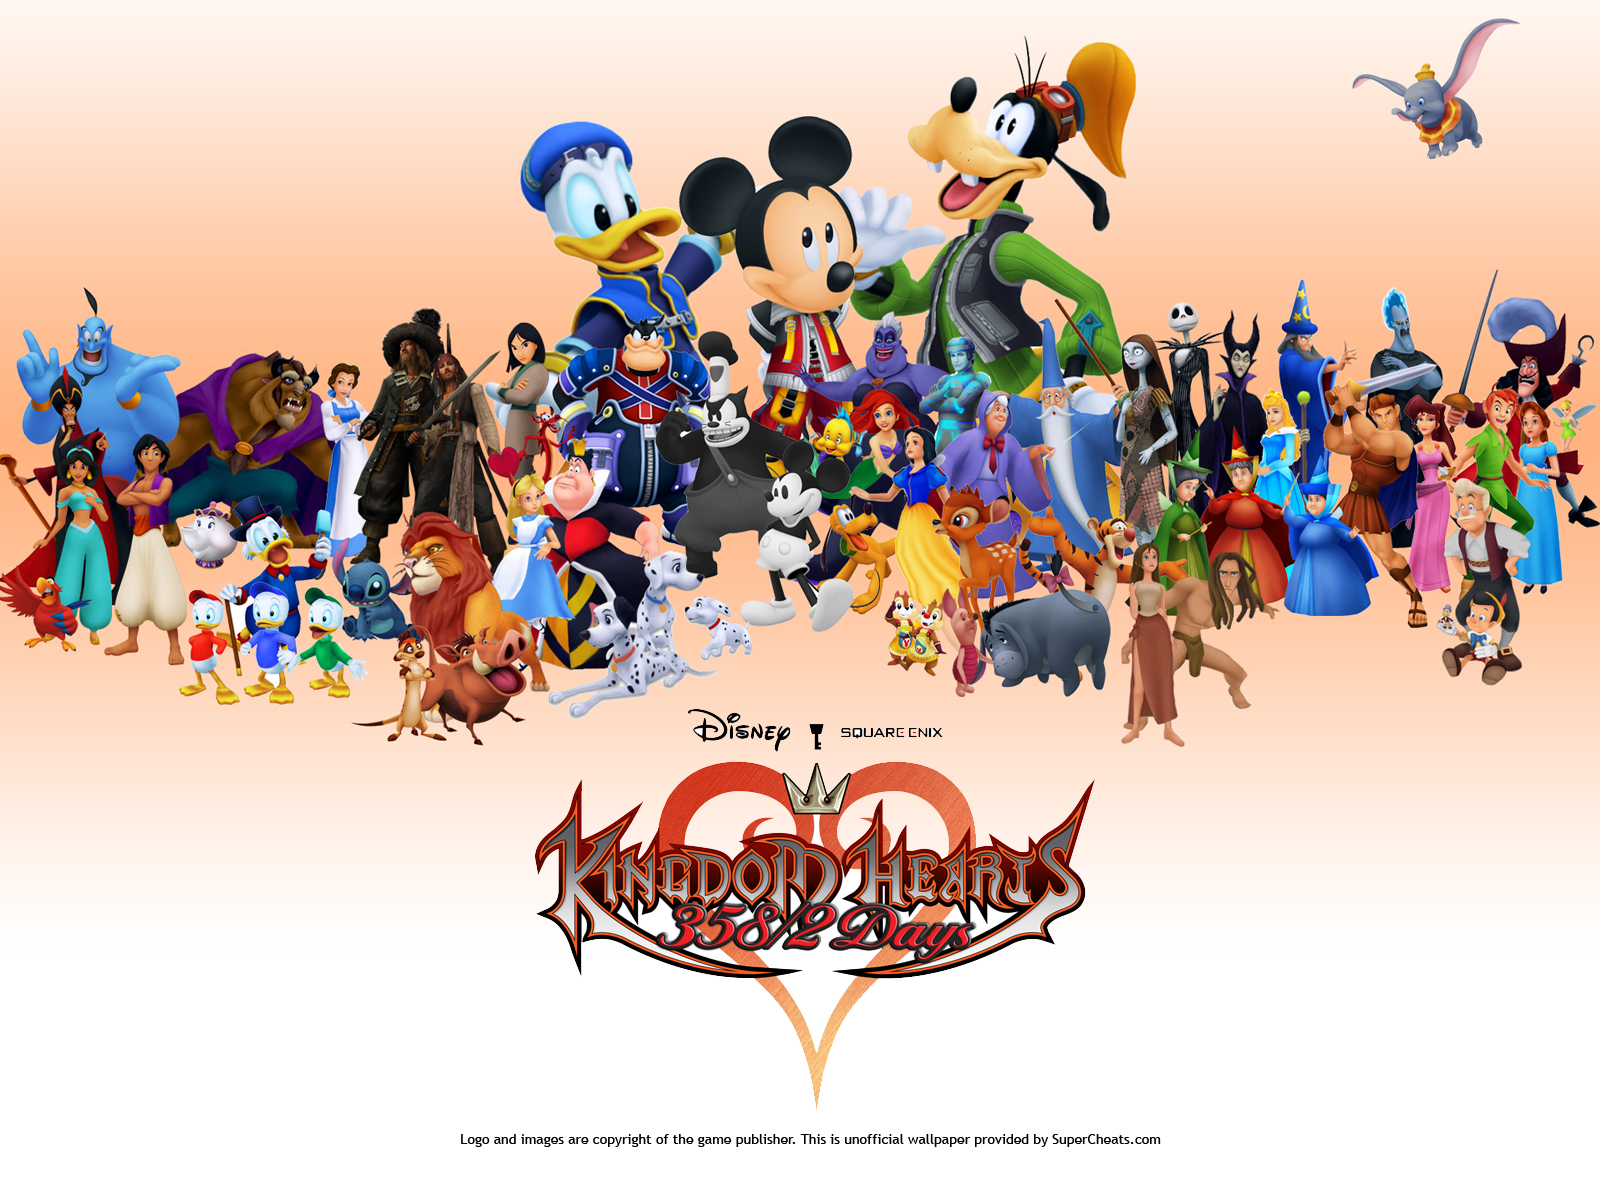 kingdom hearts images - photo #41